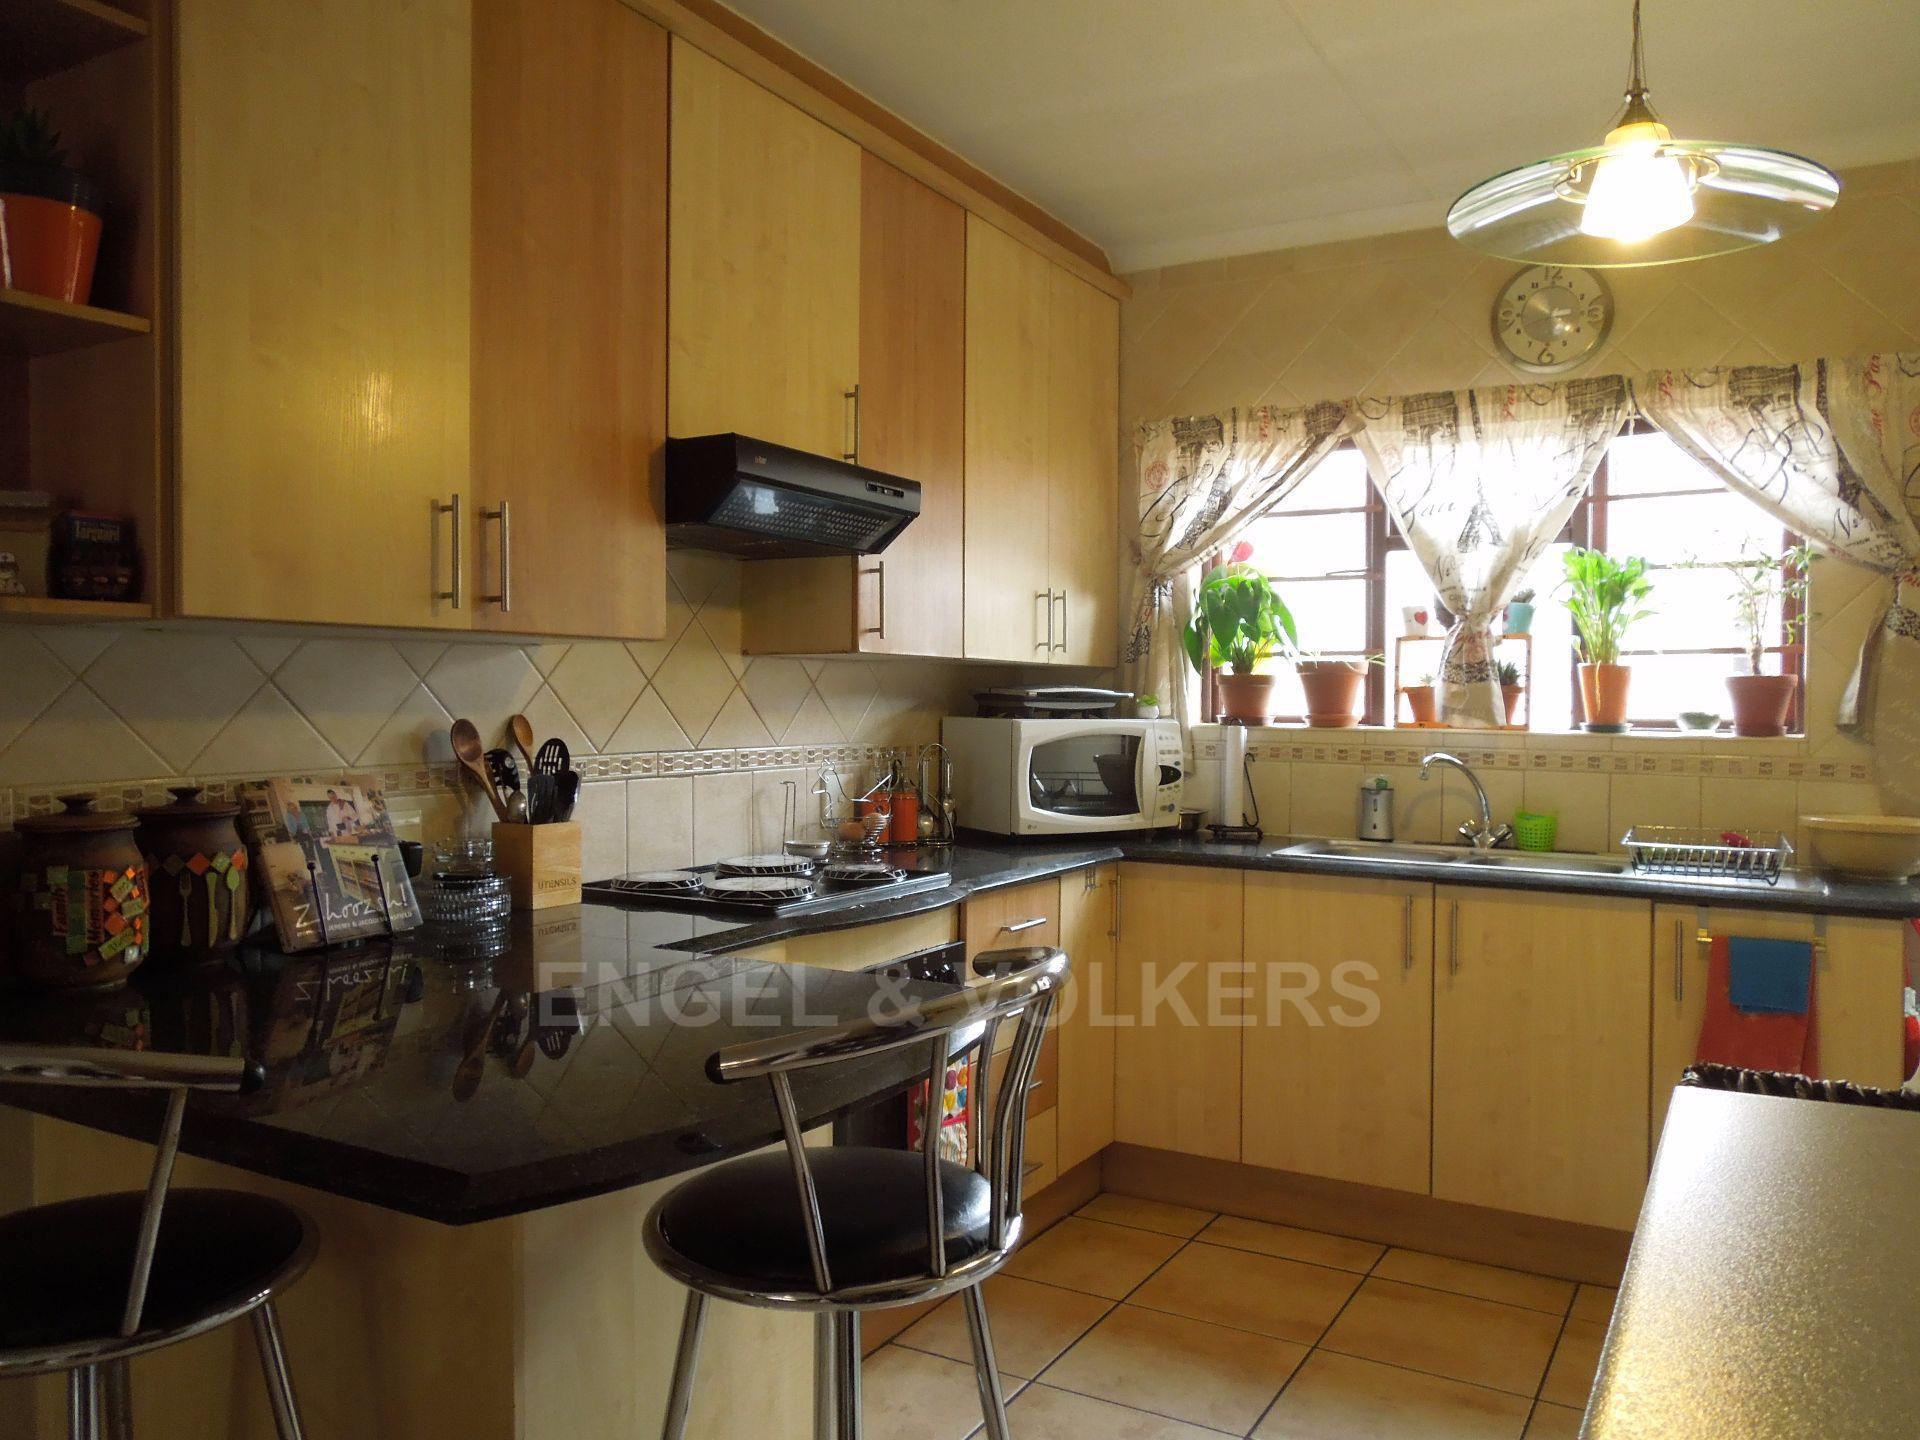 Chancliff A H property for sale. Ref No: 13536551. Picture no 4